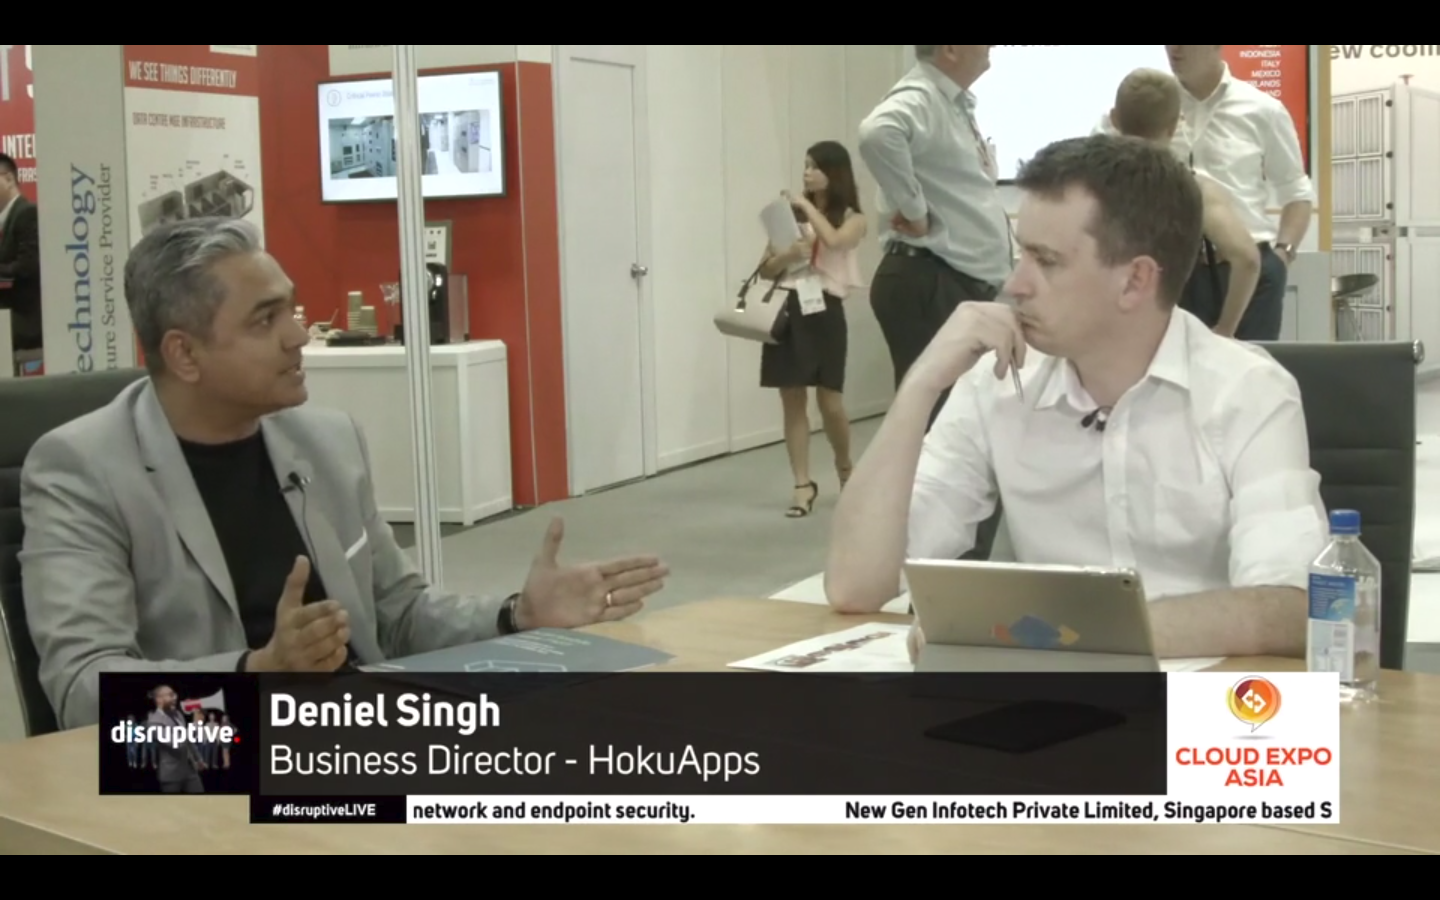 Deniel Singh, Business Director-HokuApps, speaks at Cloud Expo Asia 2018, Singapore